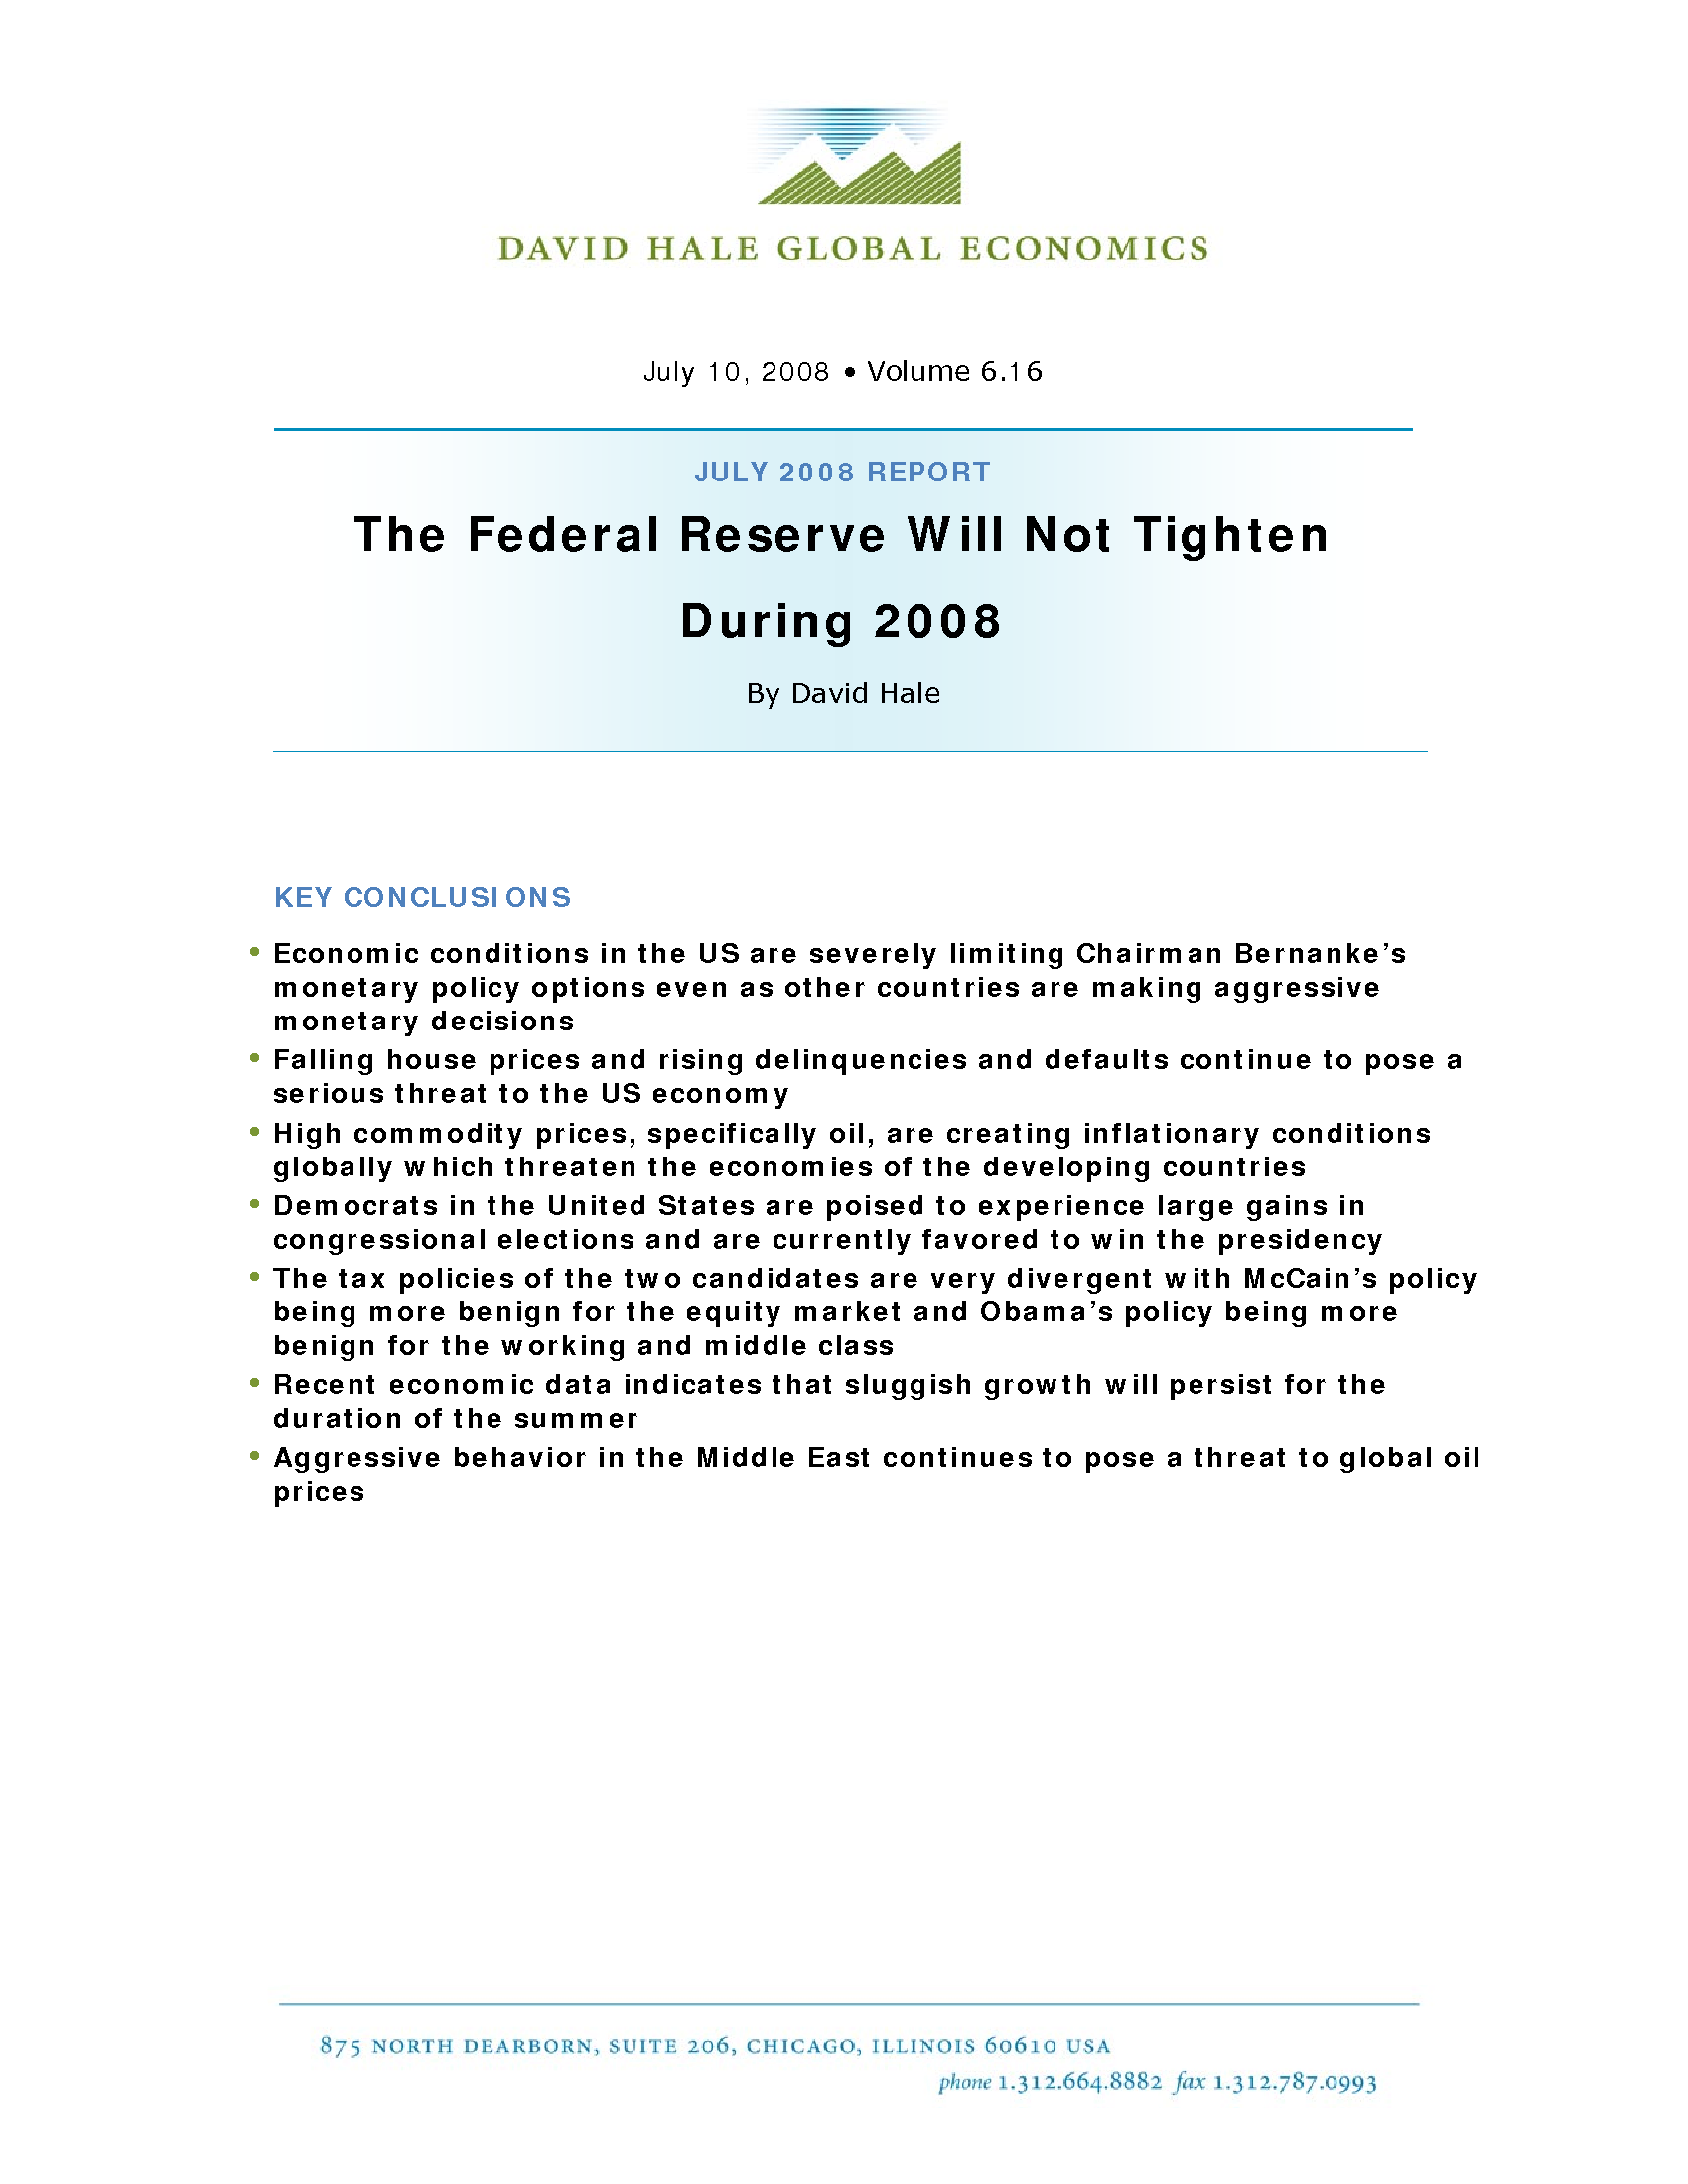 The Federal Reserve Will Not Tighten During 2008.pdf- Thumb